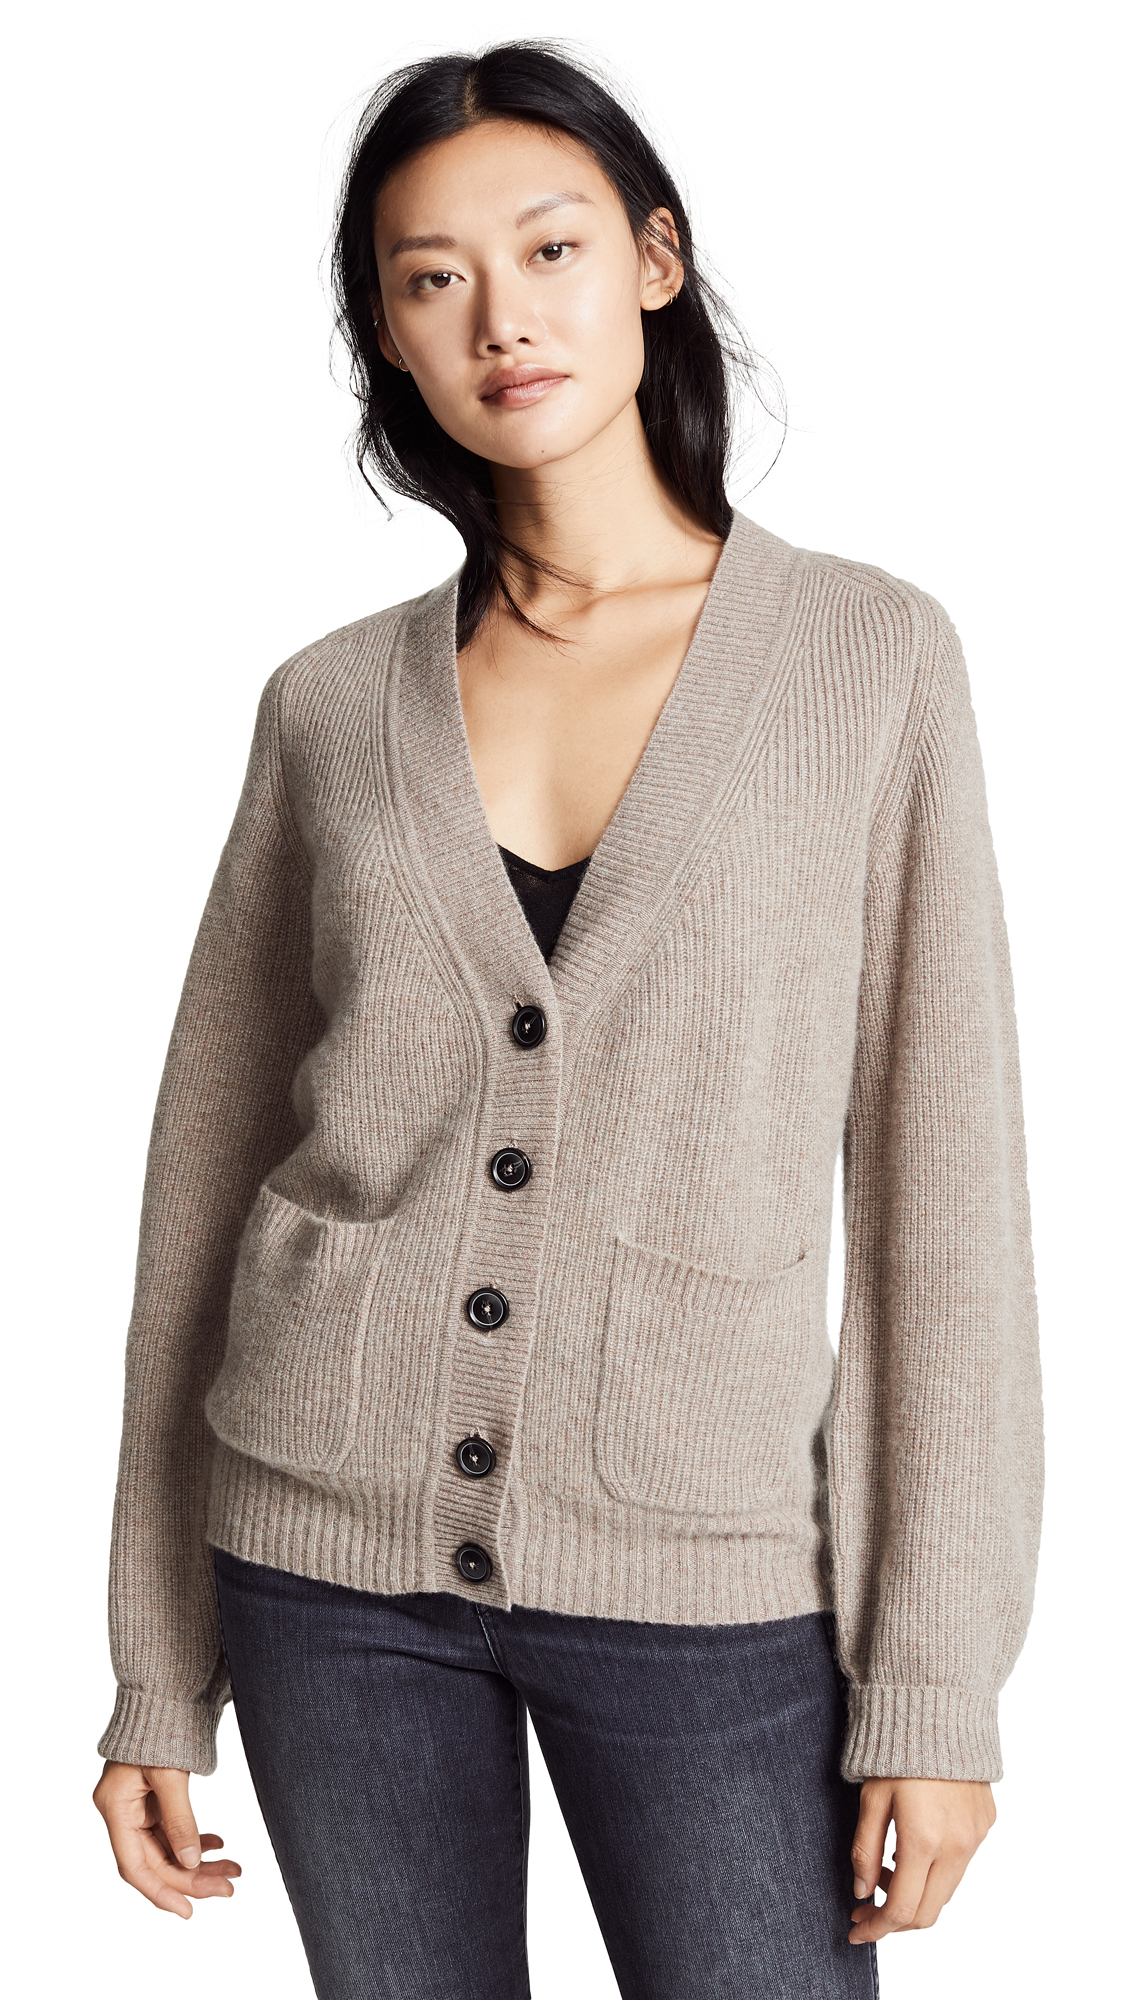 White + Warren Boyfriend Cashmere Cardigan In Mink Heather